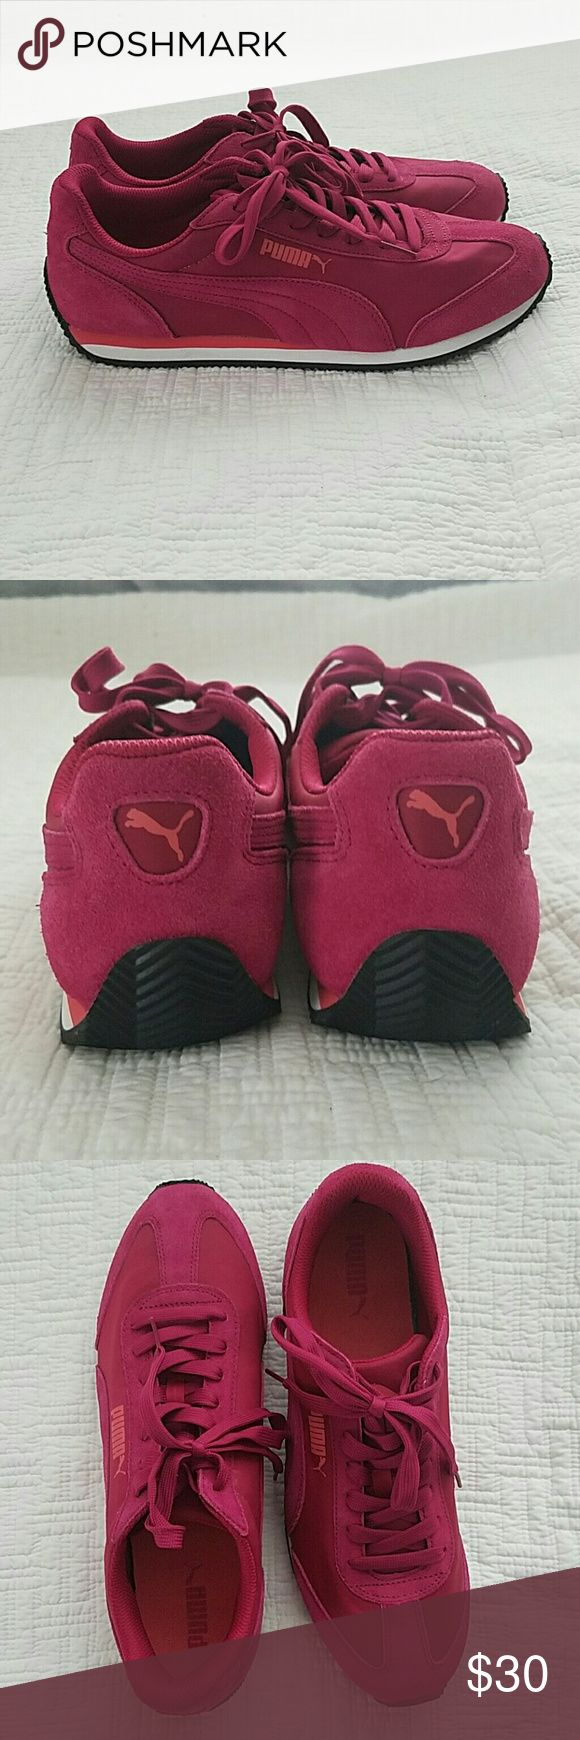 Puma Suede Athletic Shoes - Cerise/White NWOT. Have original box.  Beautiful & Fun deep pink color.  Worn for an hour around house. Very comfortable! They simply aren't for me. Super cute for any time of year, especially upcoming Spring and Summer. Puma Shoes Sneakers